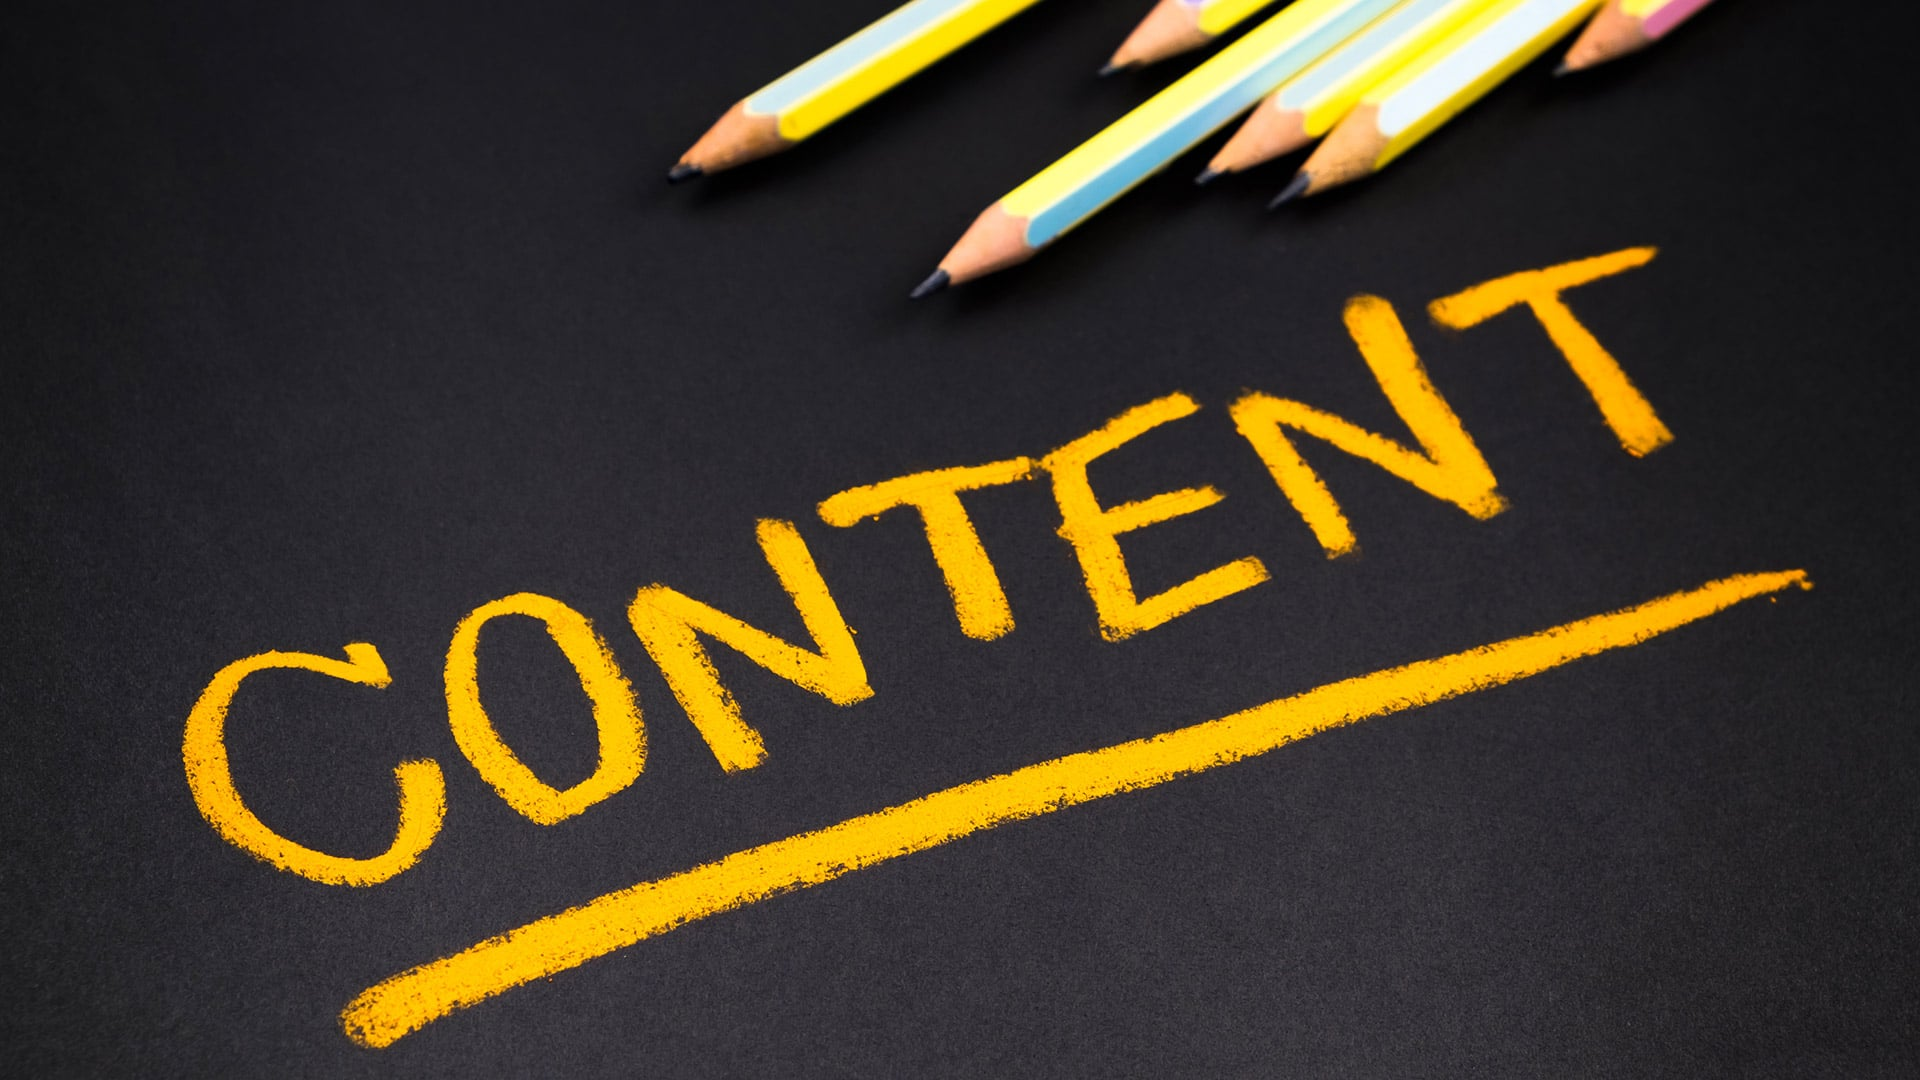 Some Metrics That Will Help You Understand And Maximize The Value Of Your Content